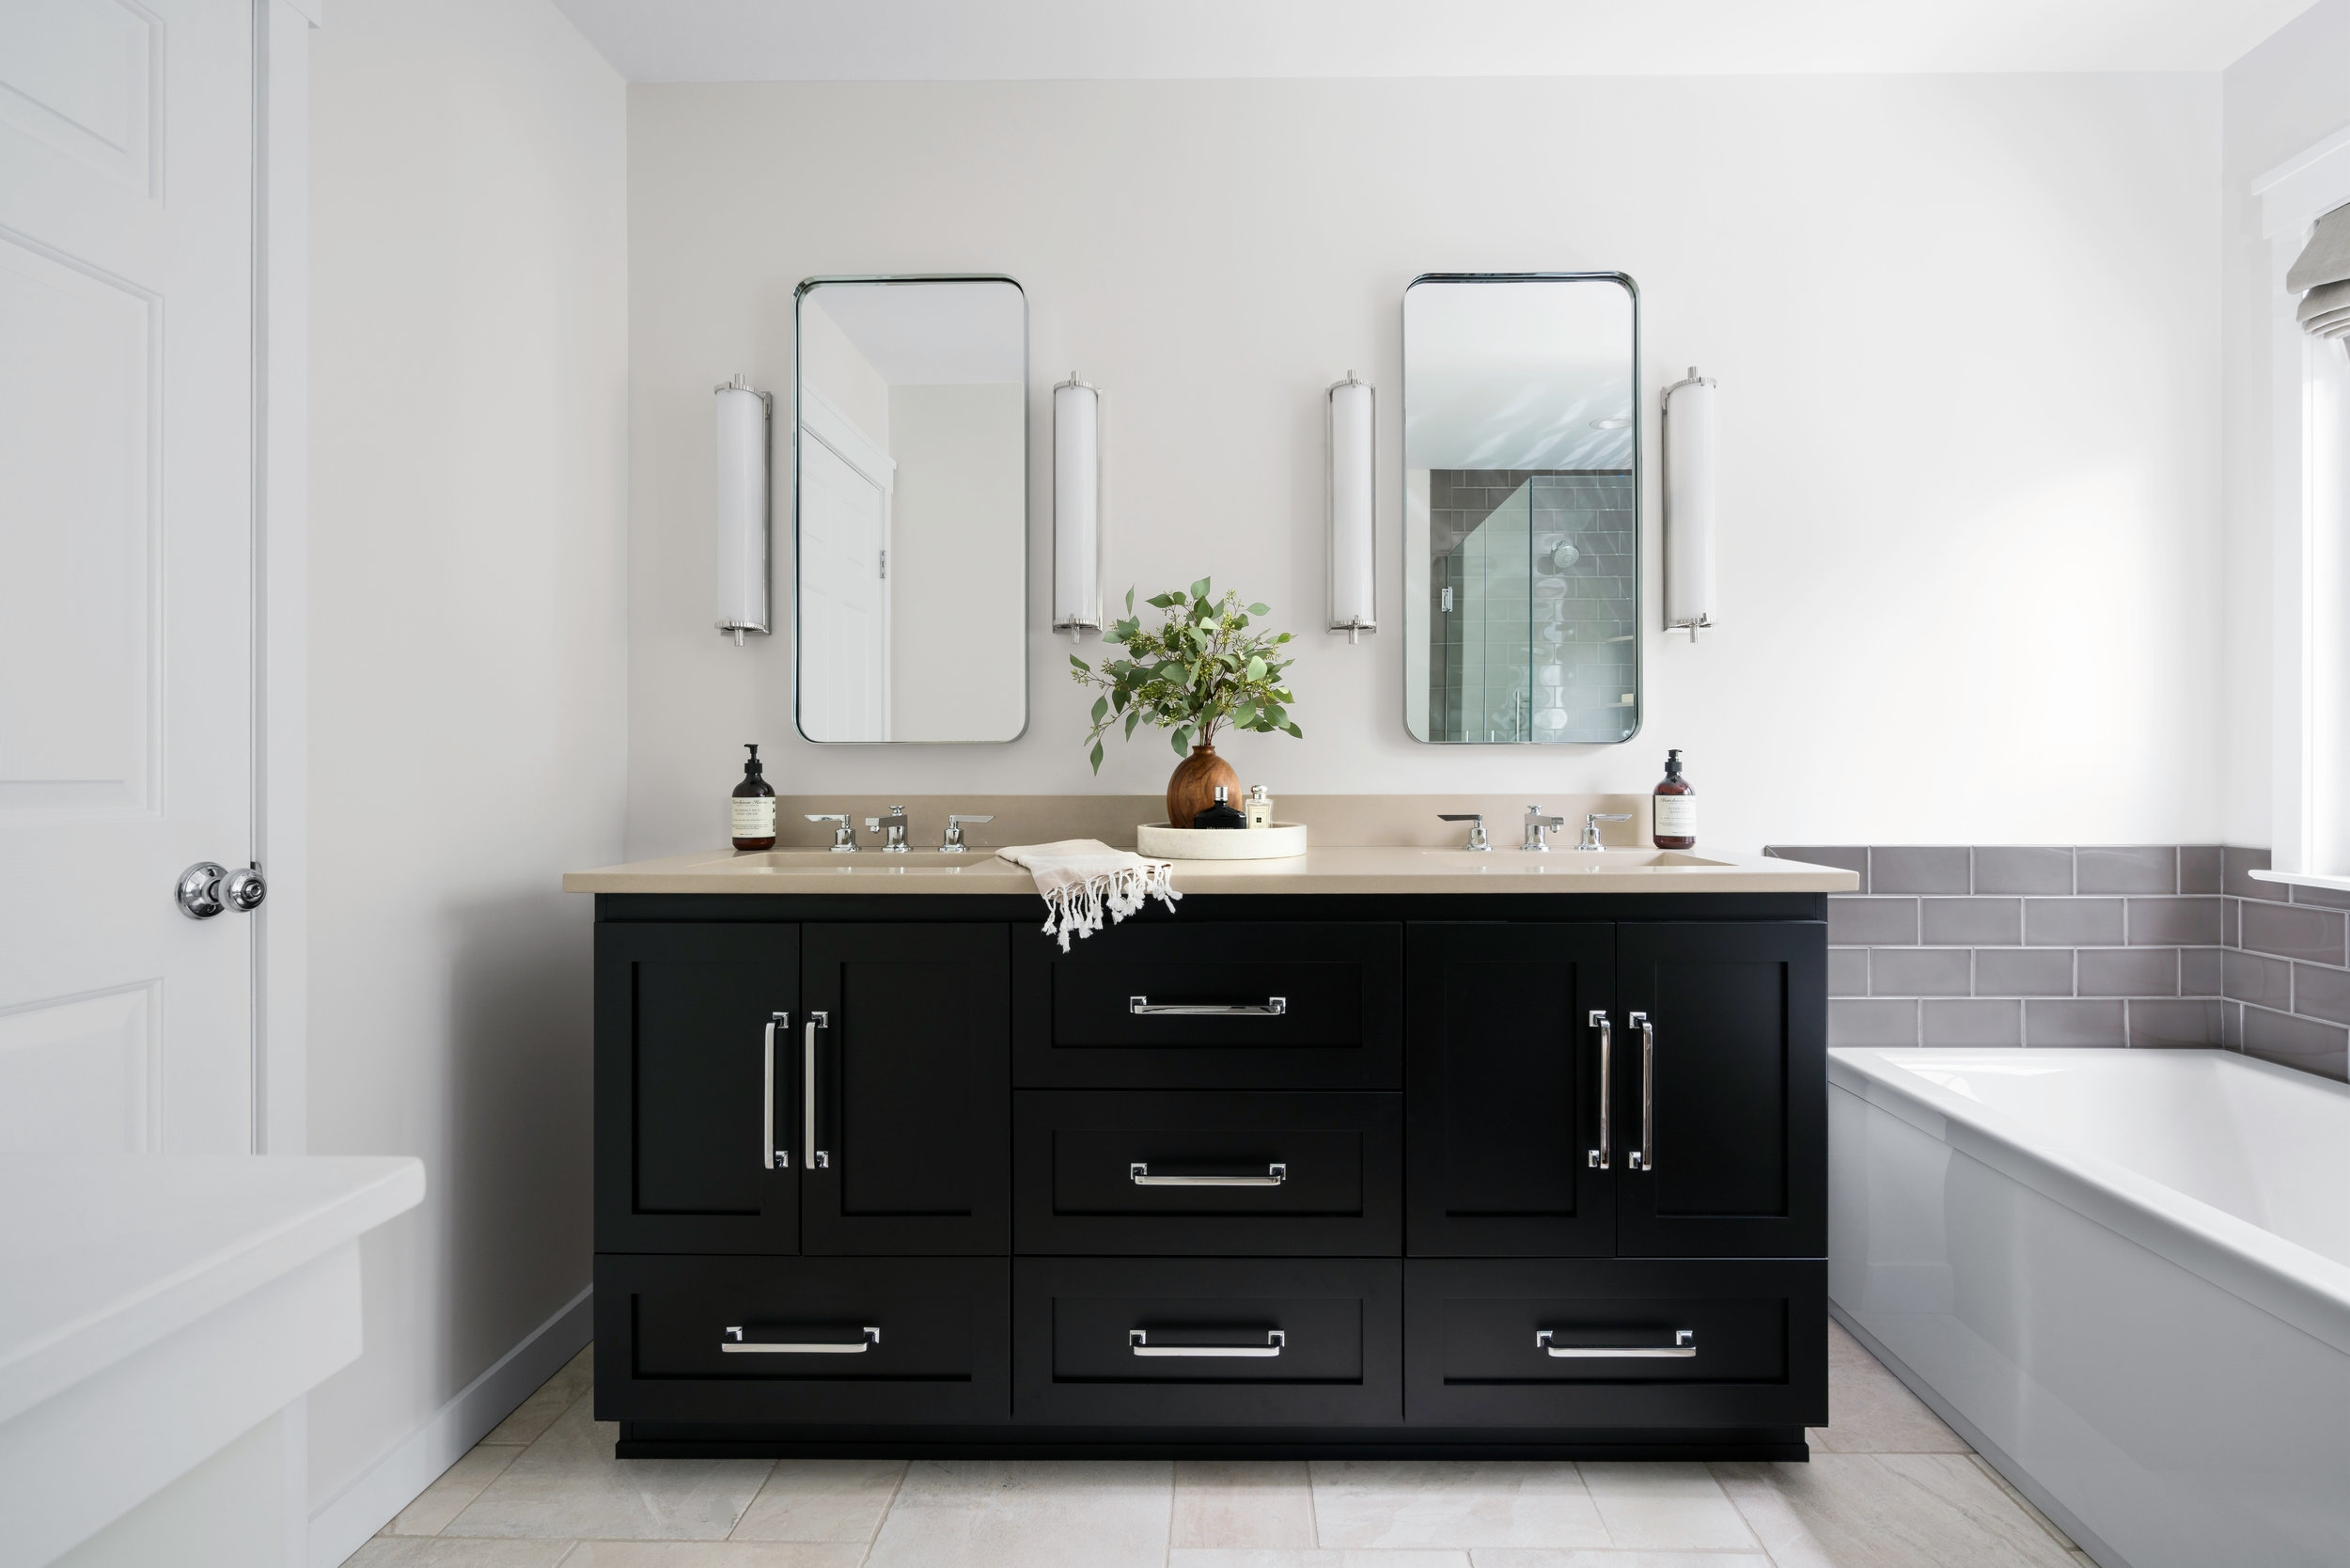 AFTER: Updated freestanding vanity with chrome finishes and sconce lighting.